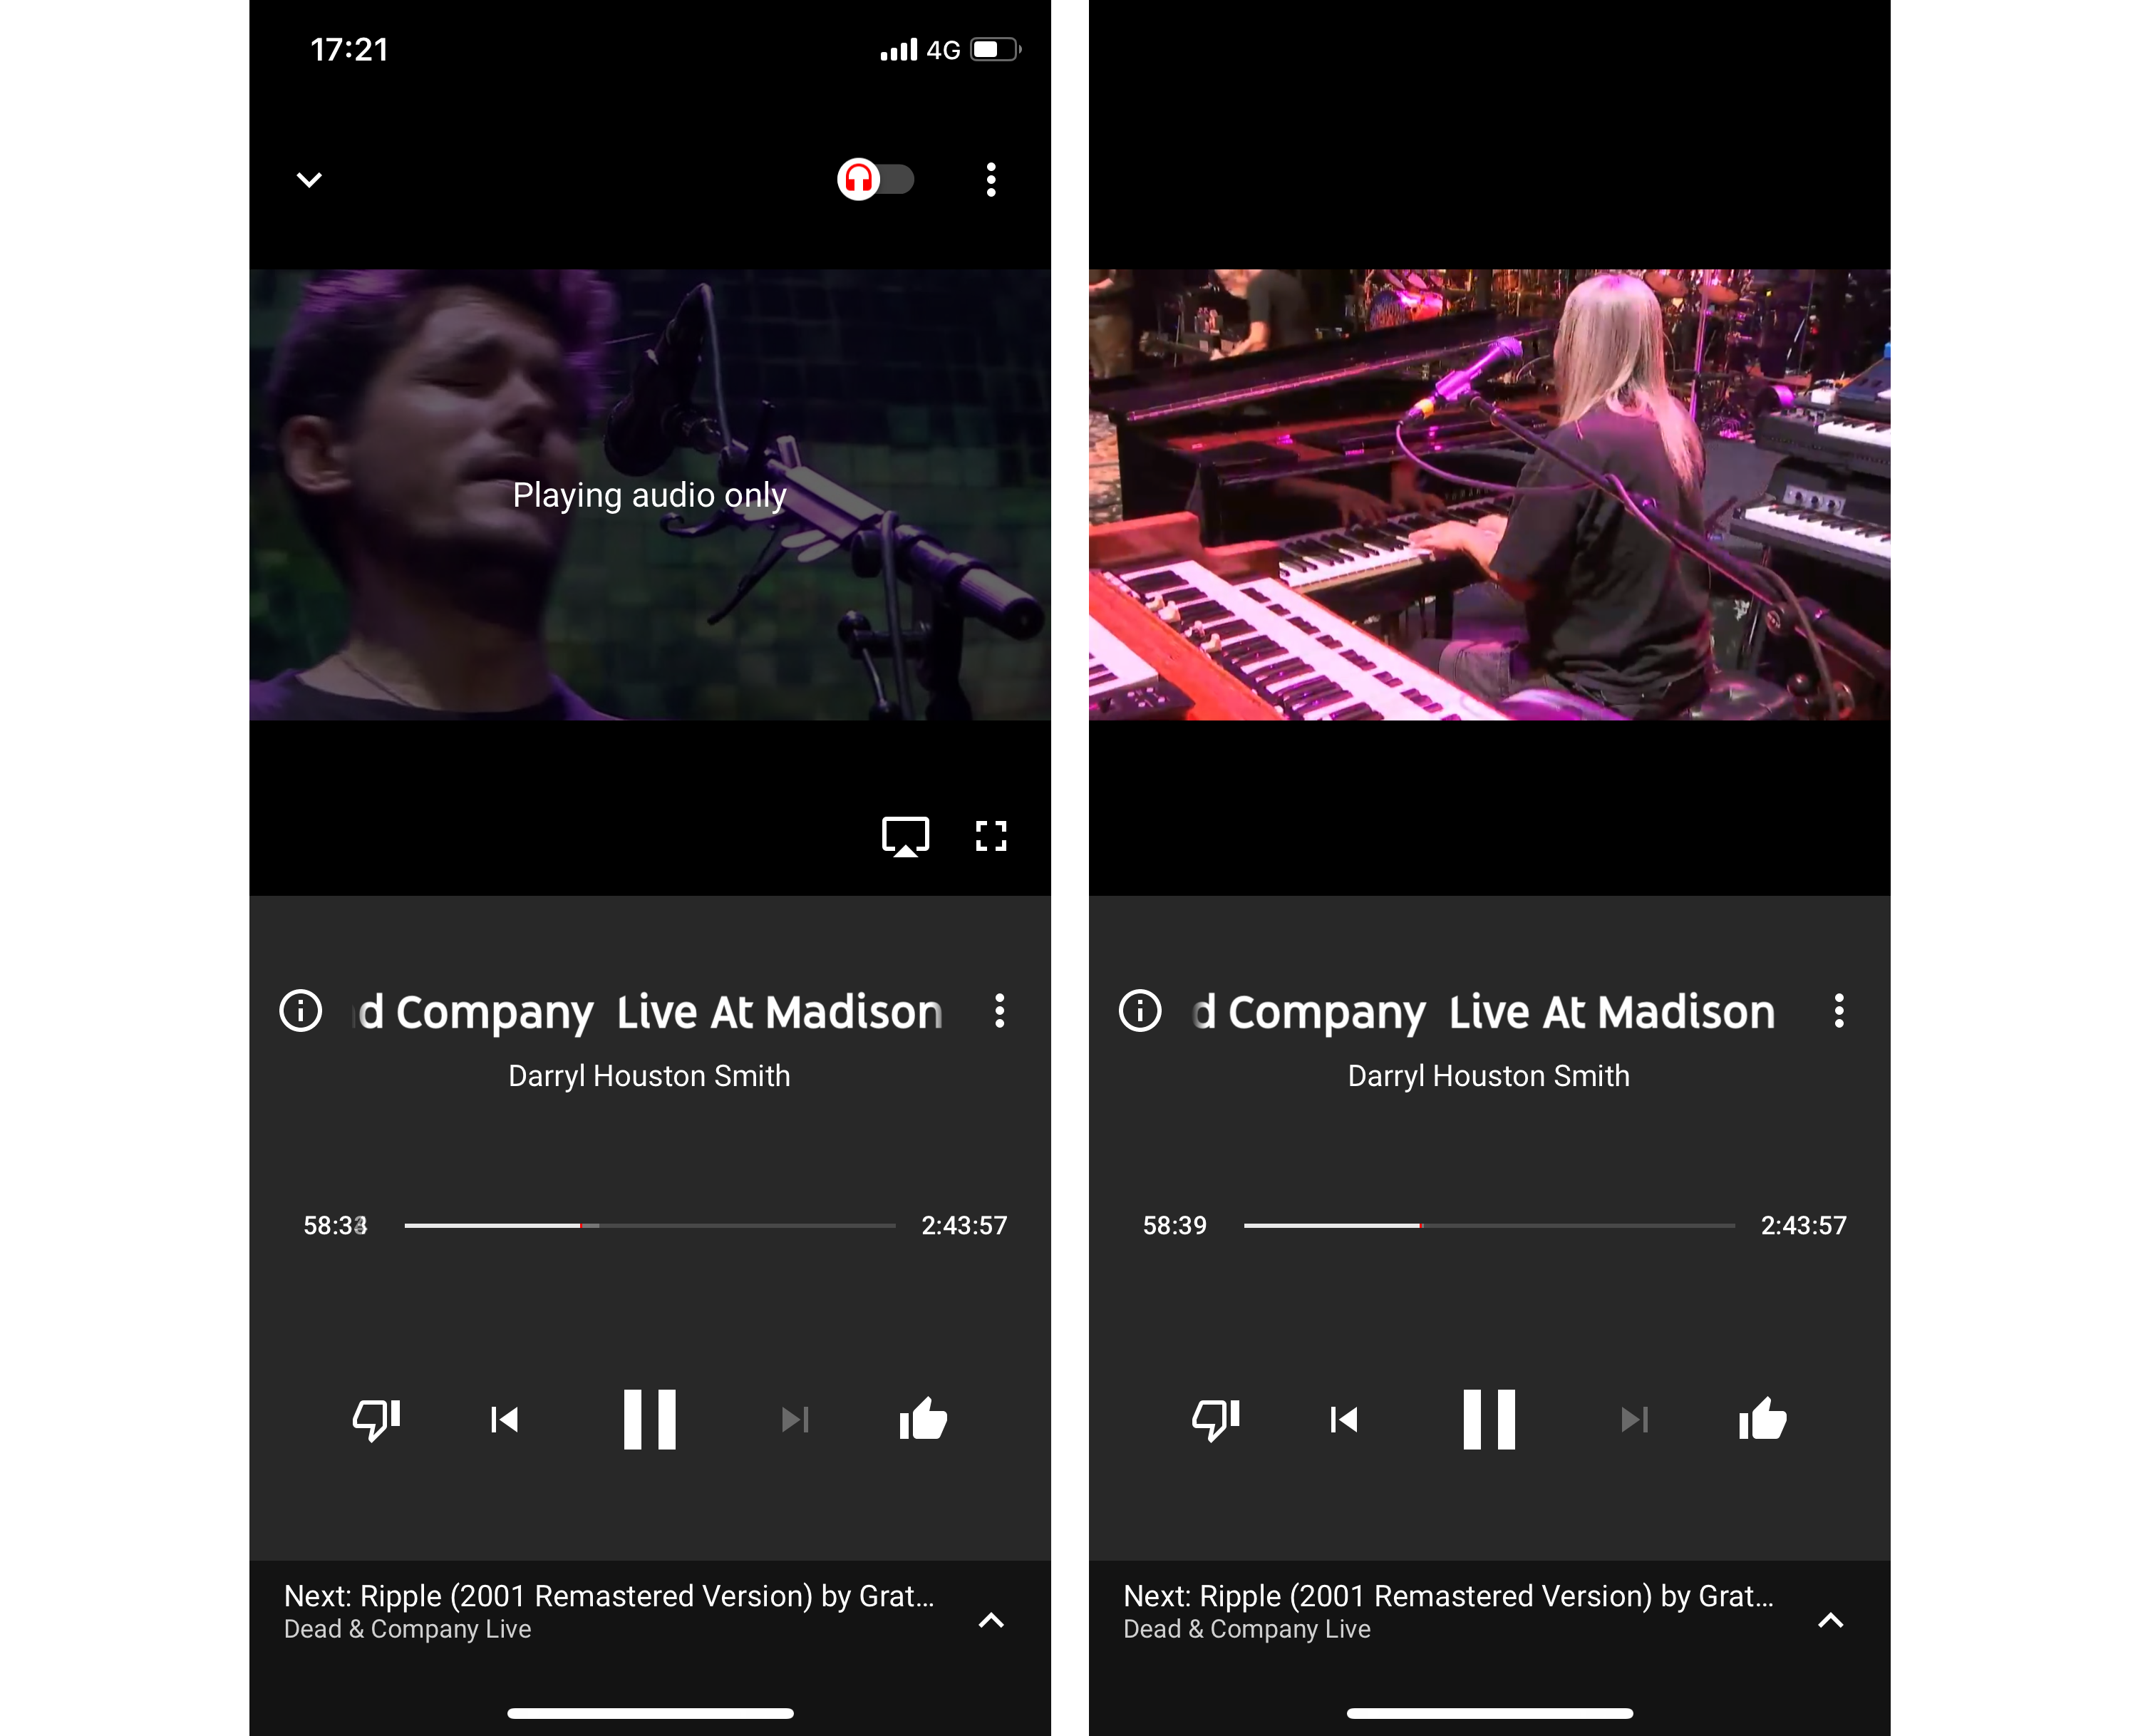 YouTube Music Audio only mode